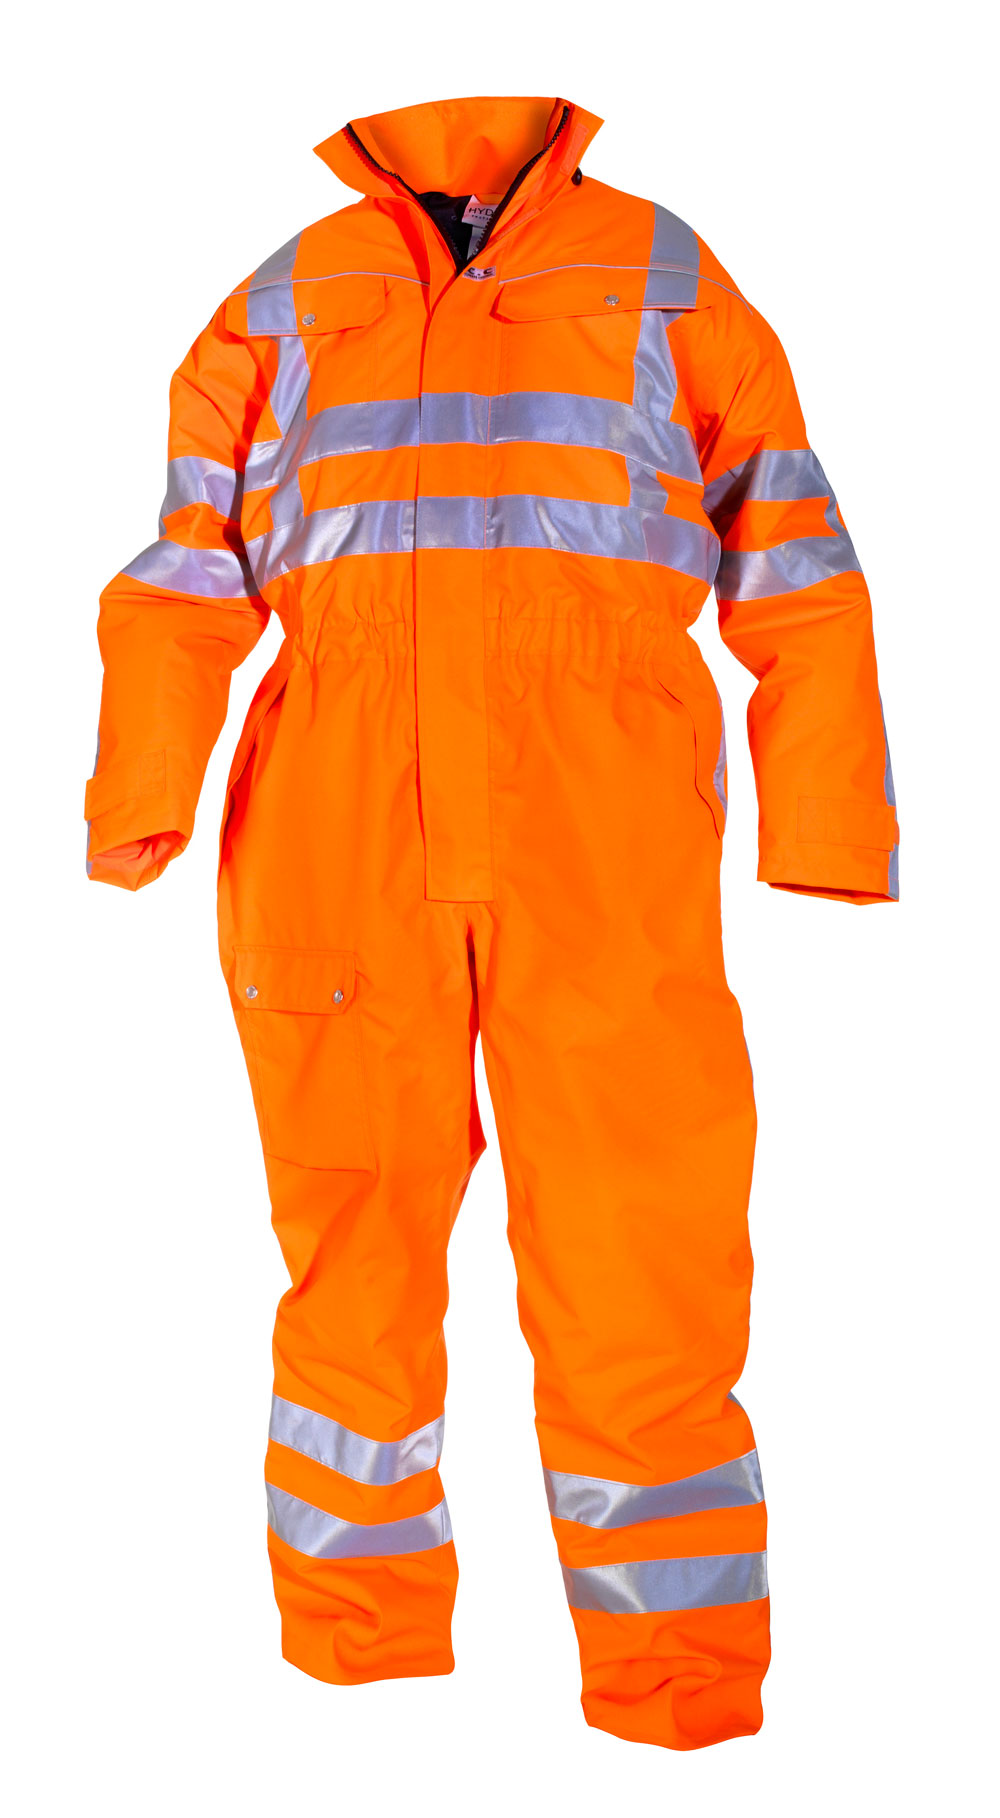 UELSEN SNS HIGH VISIBILITY WATERPROOF WINTER COVERALL